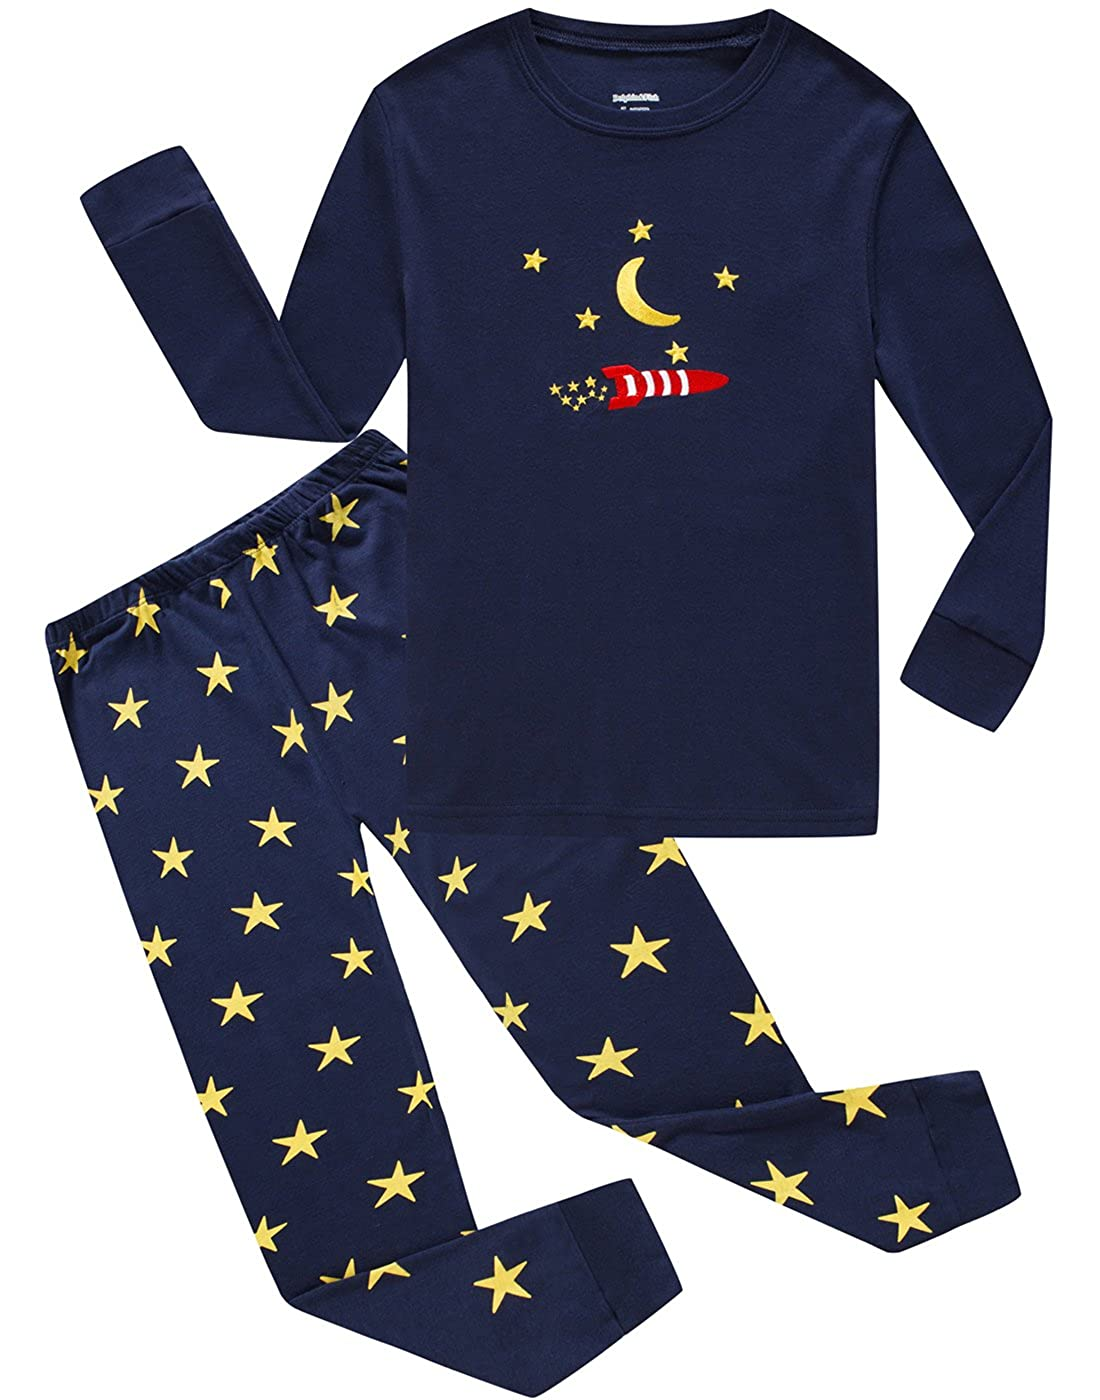 Dolphin& Fish Boys Pajamas Little Kids Pjs Sets Moon& Star Cotton Toddler Sleepwears FBA-673